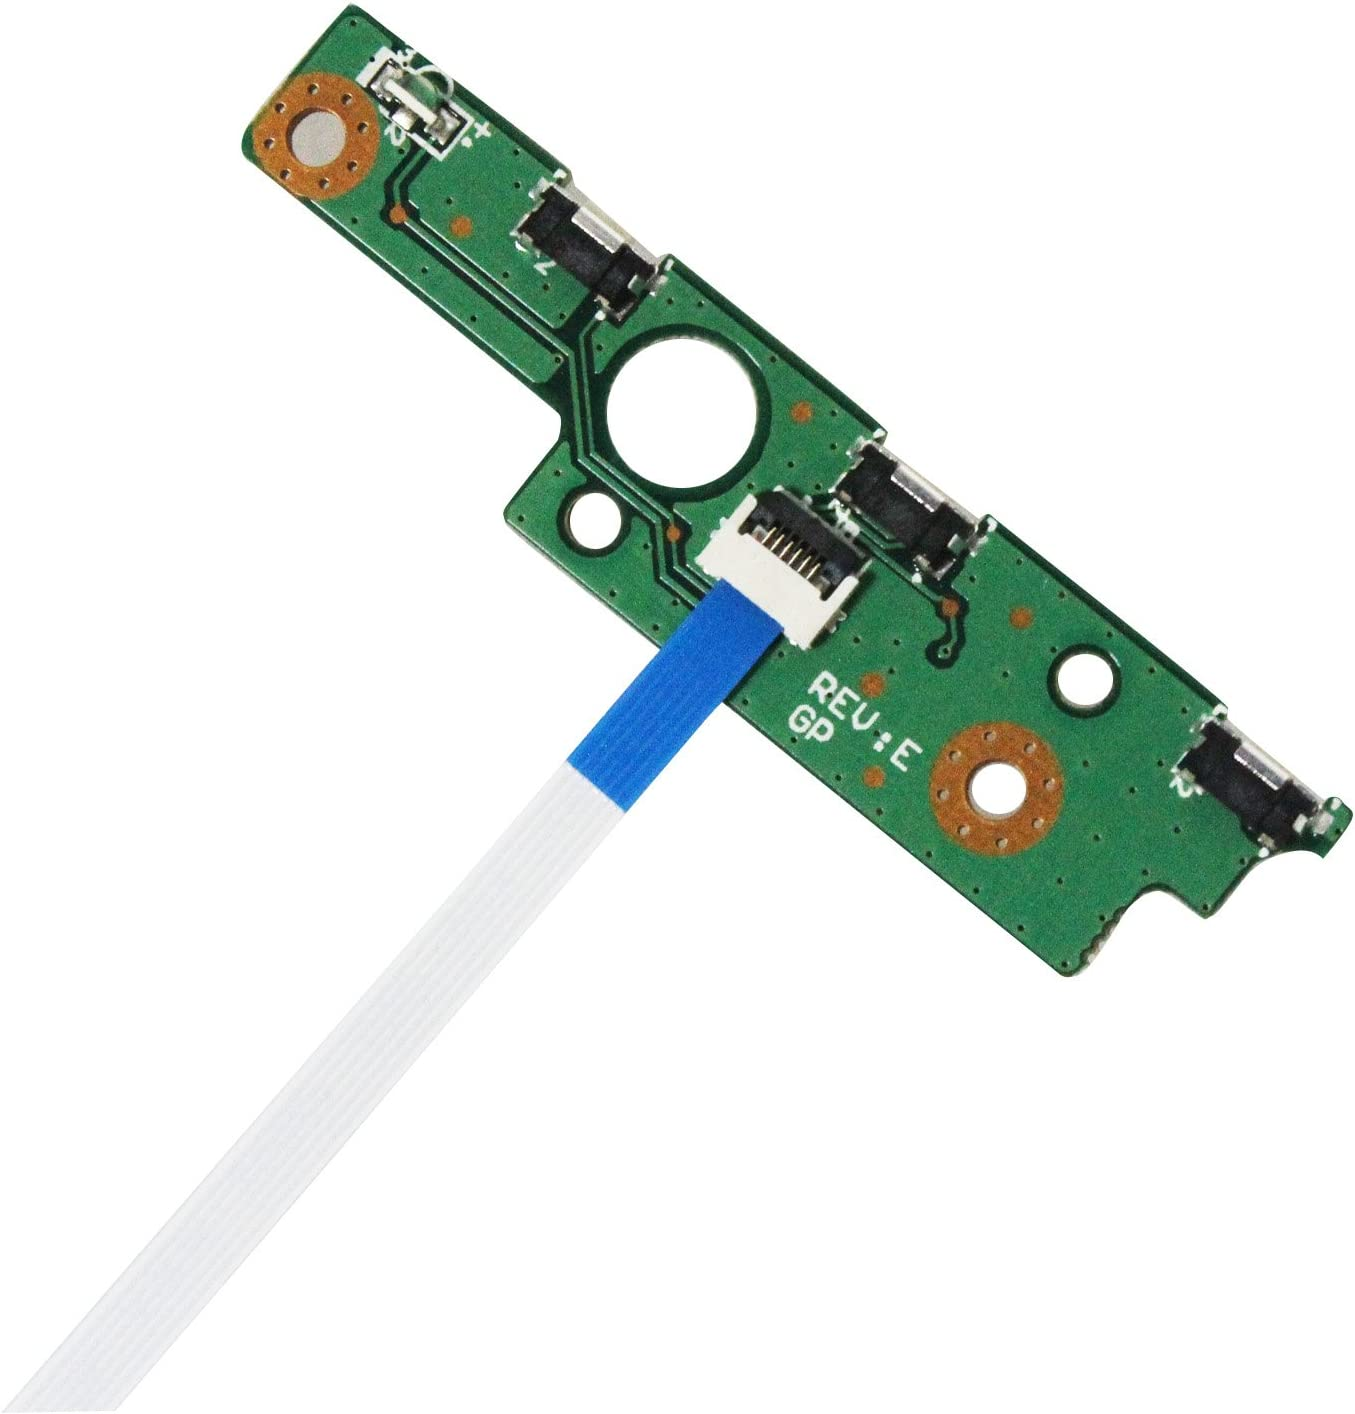 Zahara Power Button Board with Cable Replacement for Toshiba P55W-B5220 P55W-B5224 P55W-B5318D P55W-B5112